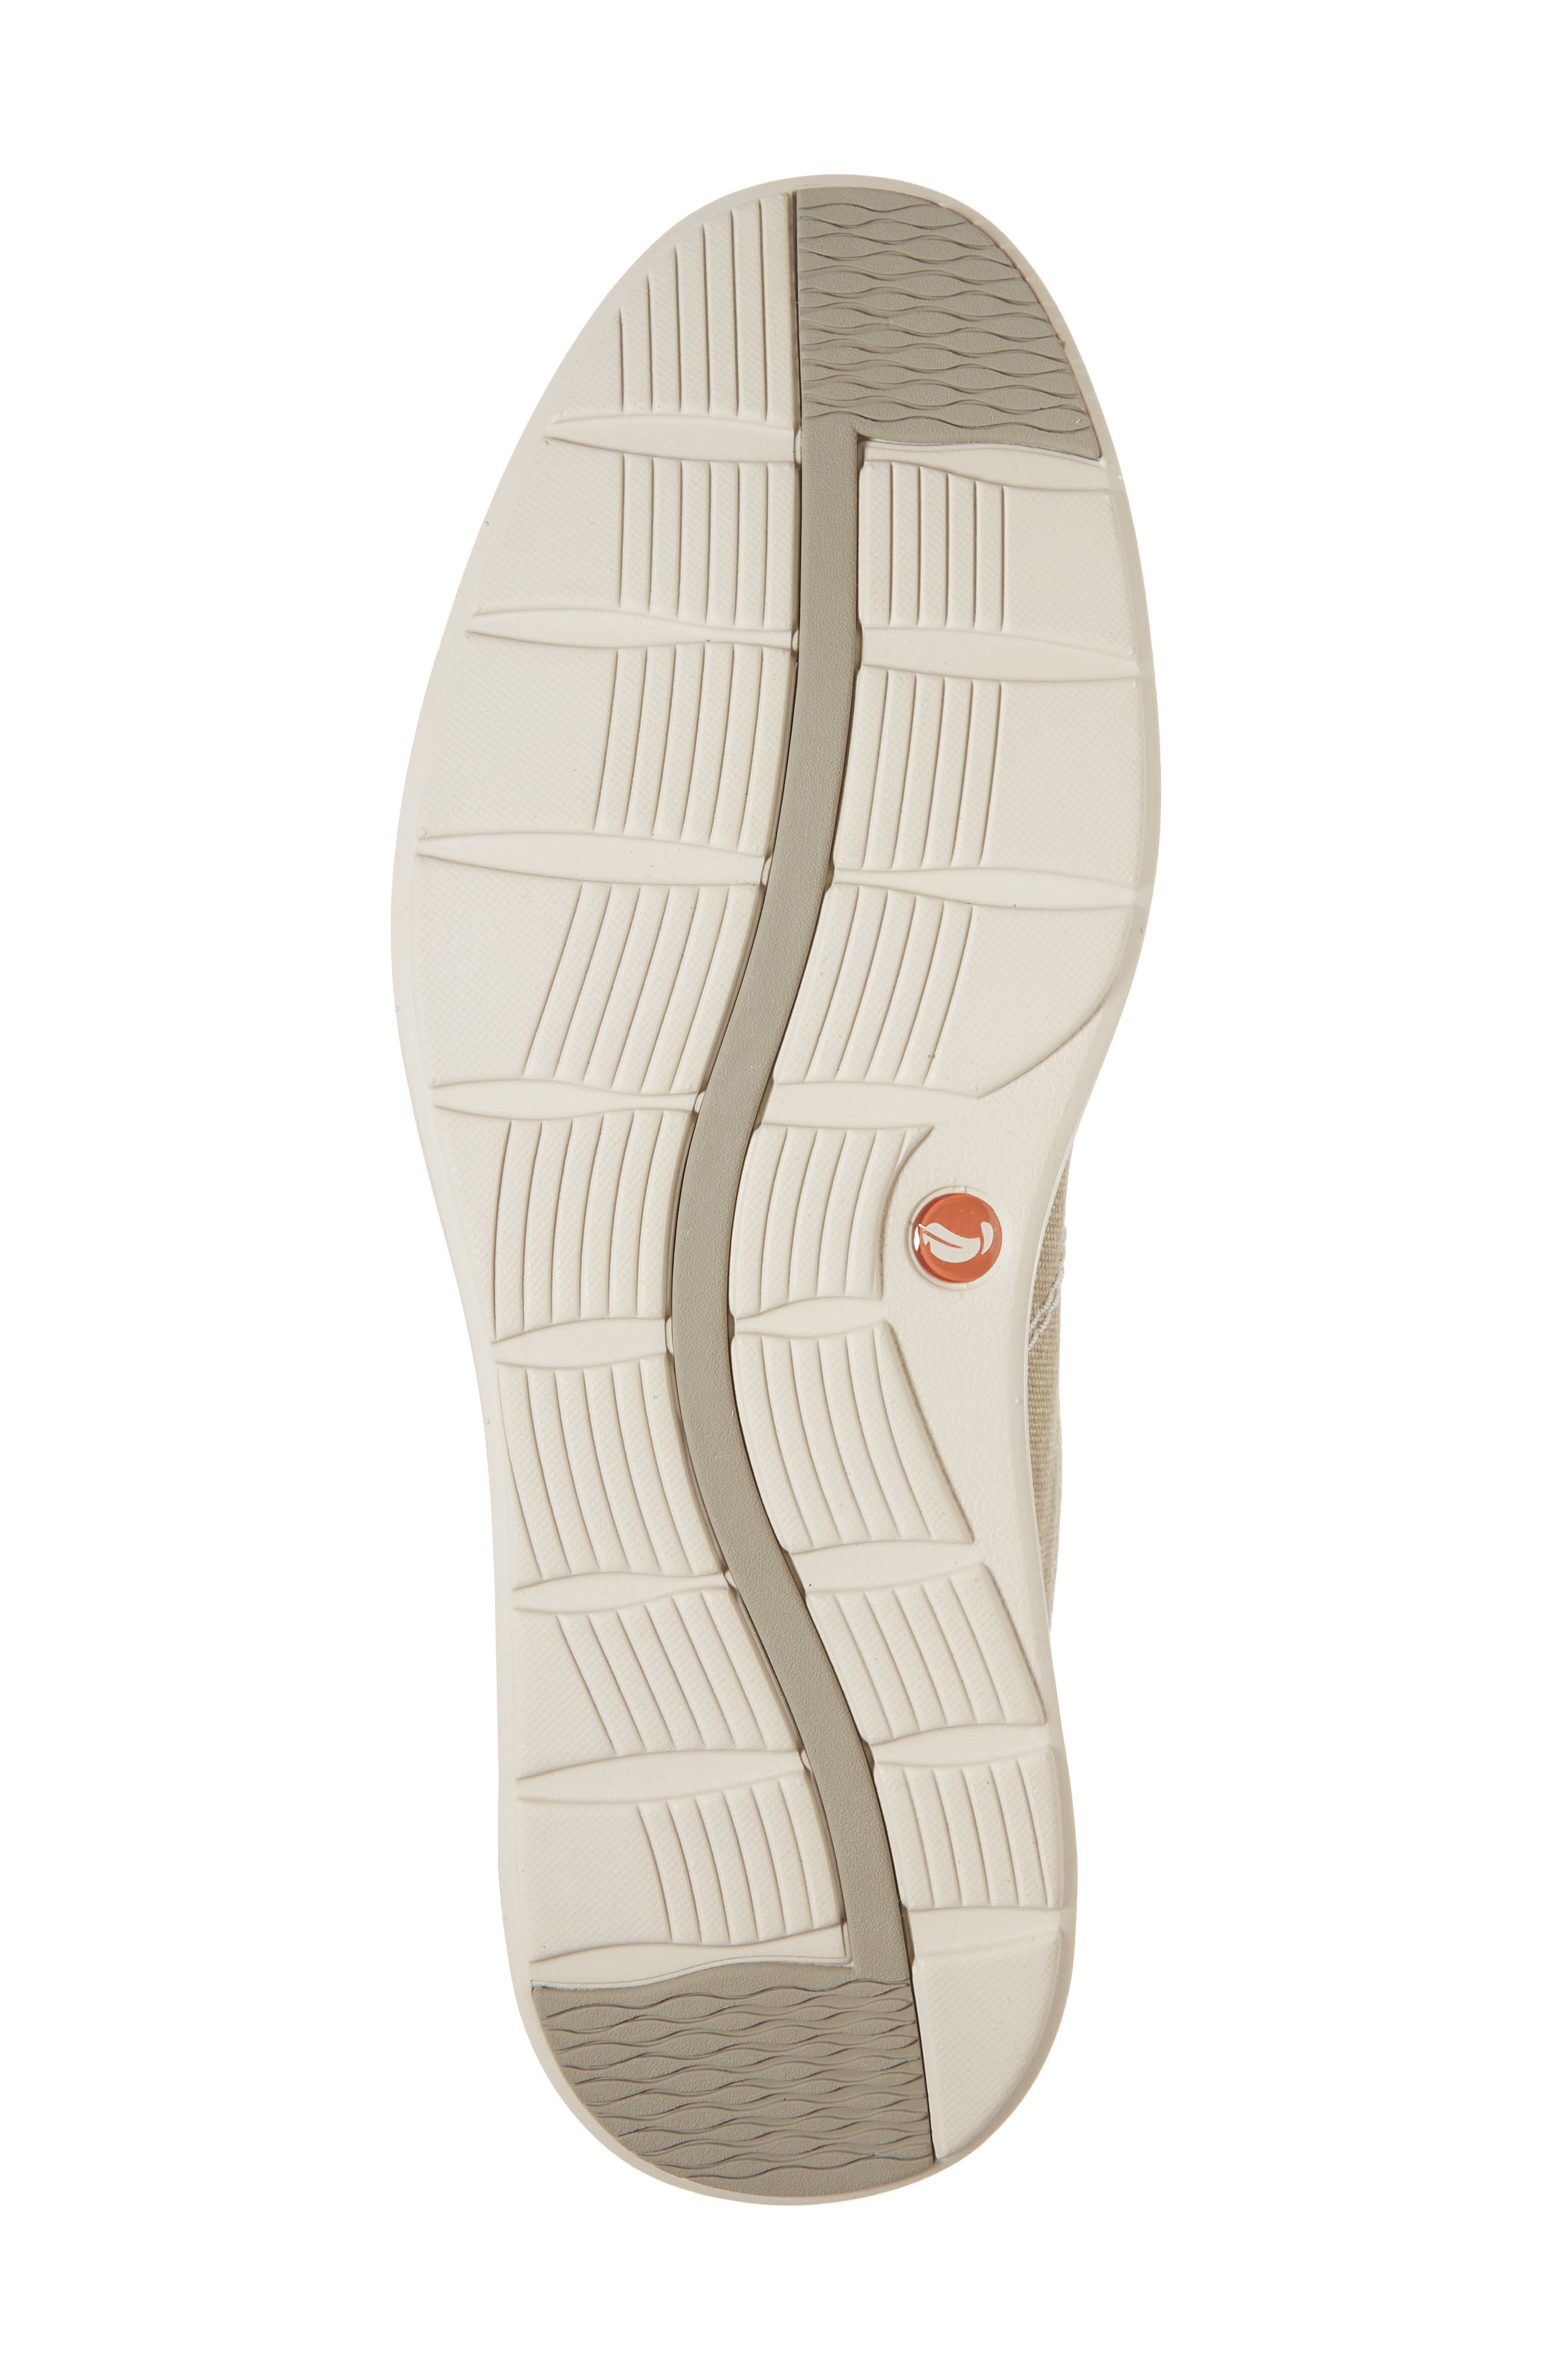 Clarks<sup>®</sup> Unabode Form Sneaker,                             Alternate thumbnail 6, color,                             SAND FABRIC